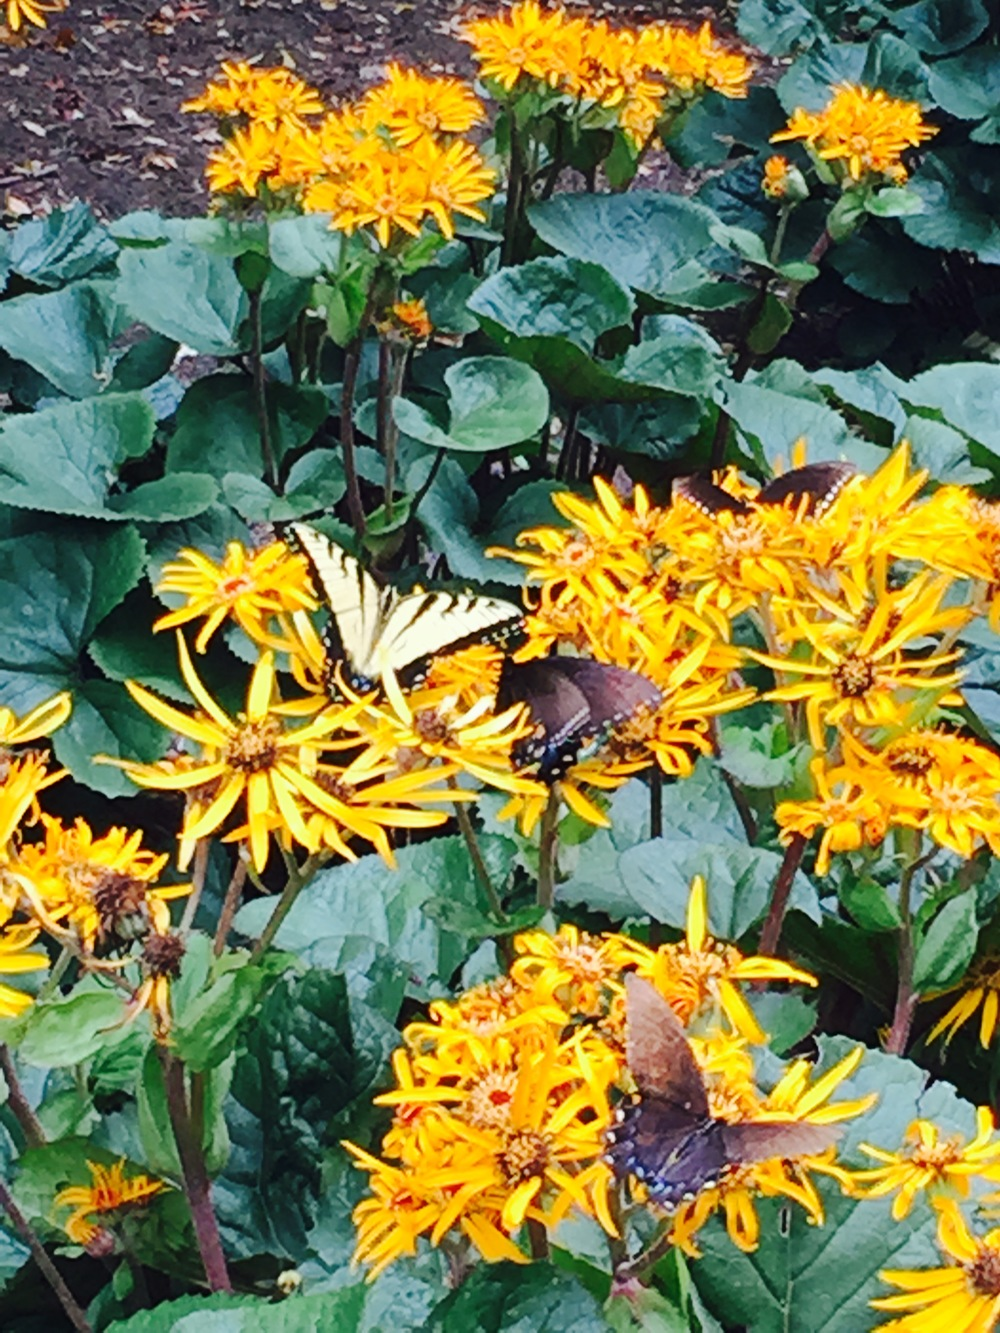 Ligularia is a butterfly magnet. Shade plants can be pollinators, too.